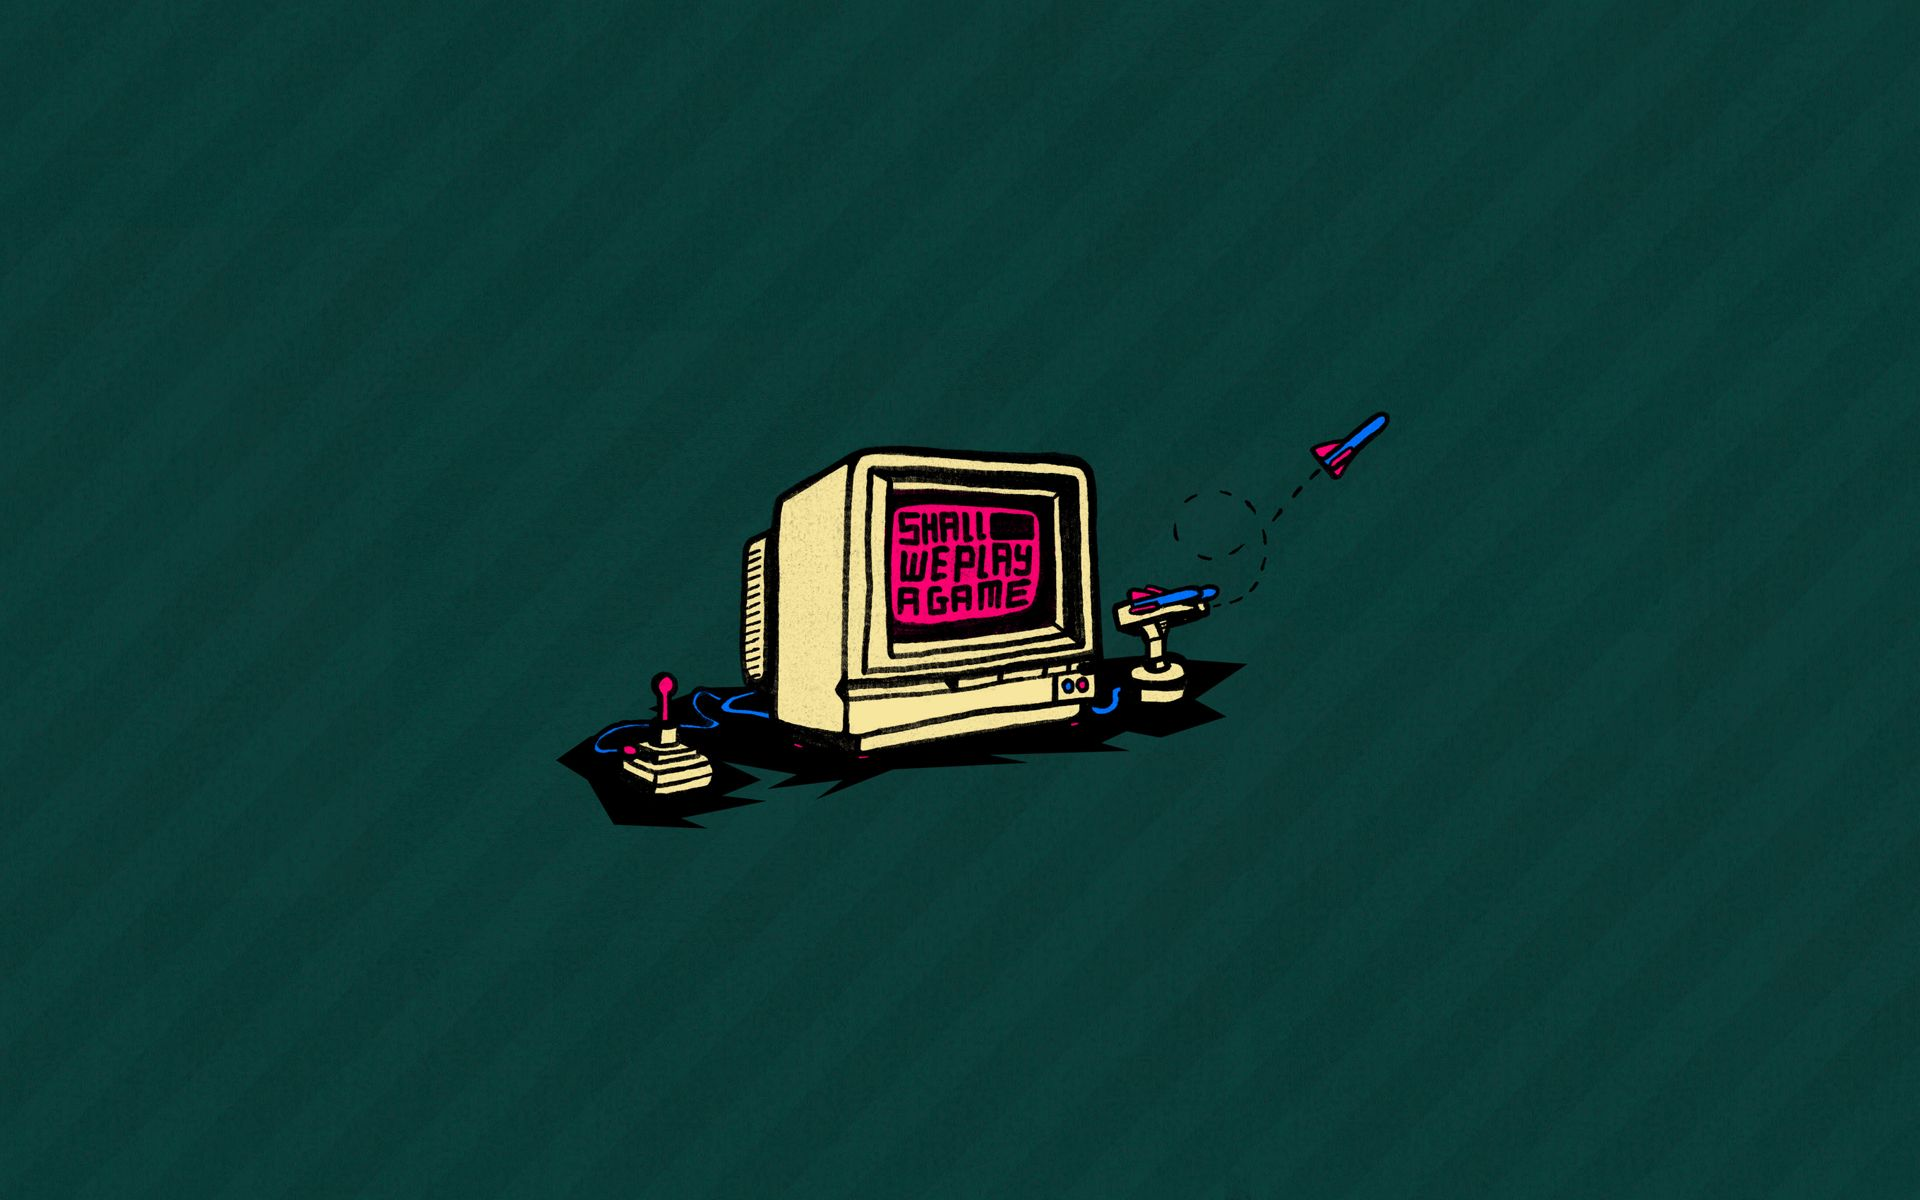 Retro Computer Wallpapers Top Free Retro Computer Backgrounds Wallpaperaccess